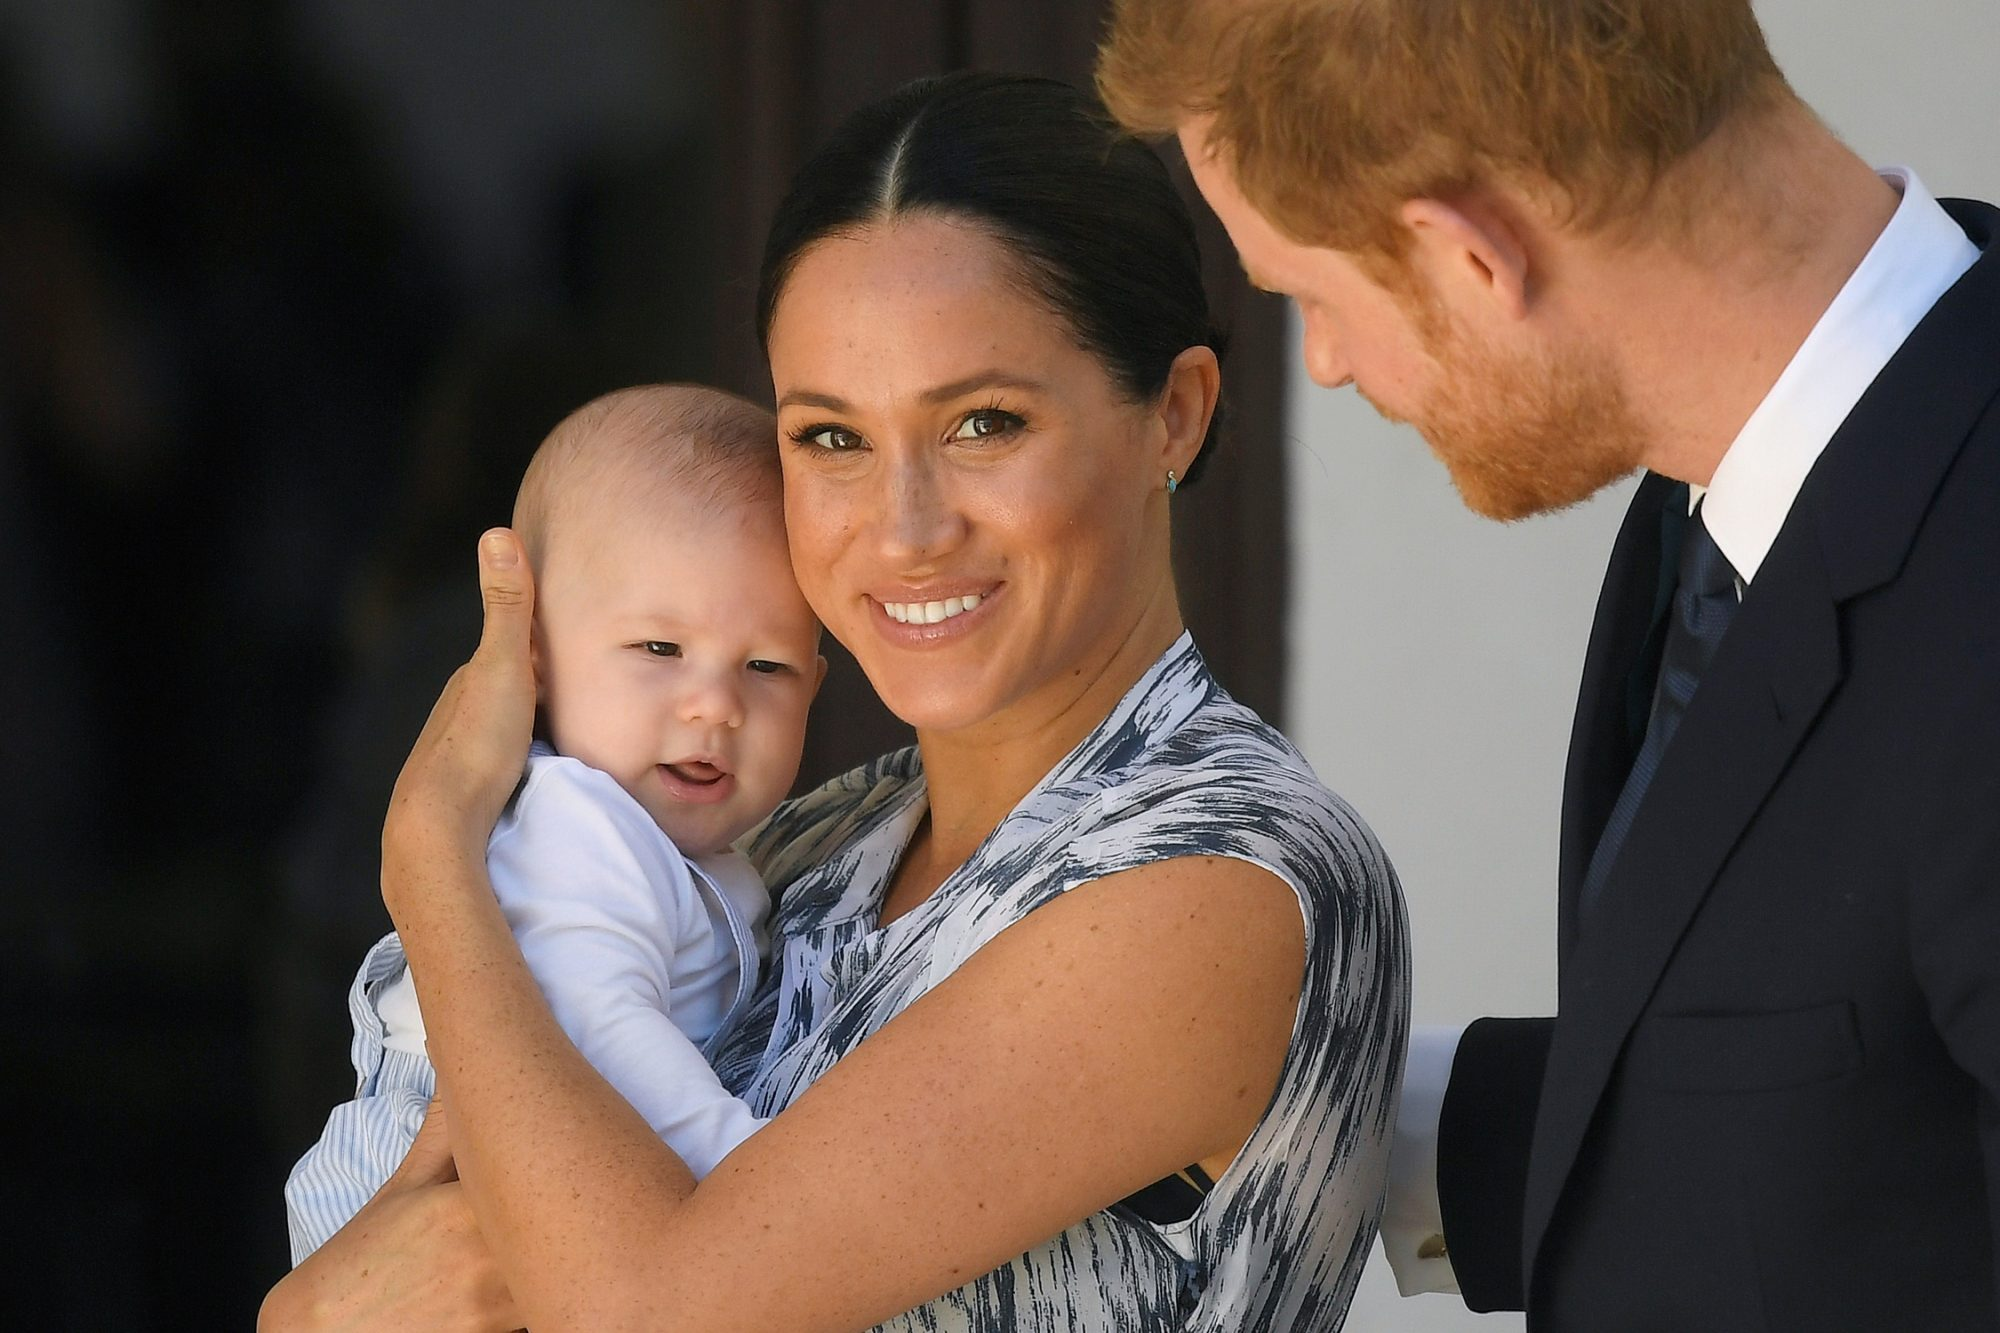 Prince Harry Is Dropping Hints About Baby No. 2 with Meghan Markle!